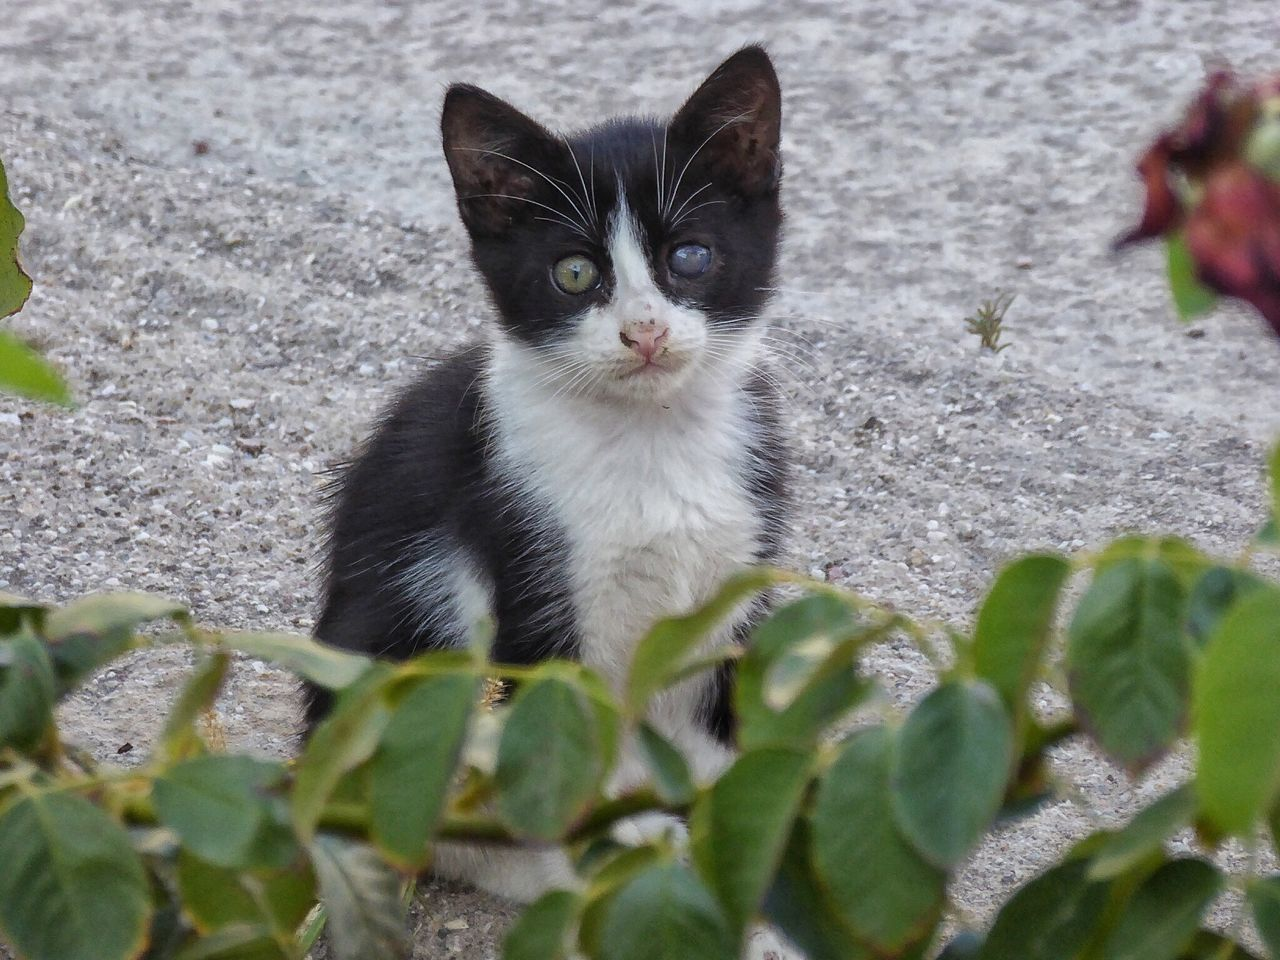 Patmos Patmos Island Patmos Island Greece Dodecanese Greece GREECE ♥♥ Cats Cat Cat♡ Cat Lovers Cats Of Greece Blackandwhite Black And White Black & White Black And White Cat Black And White Cats